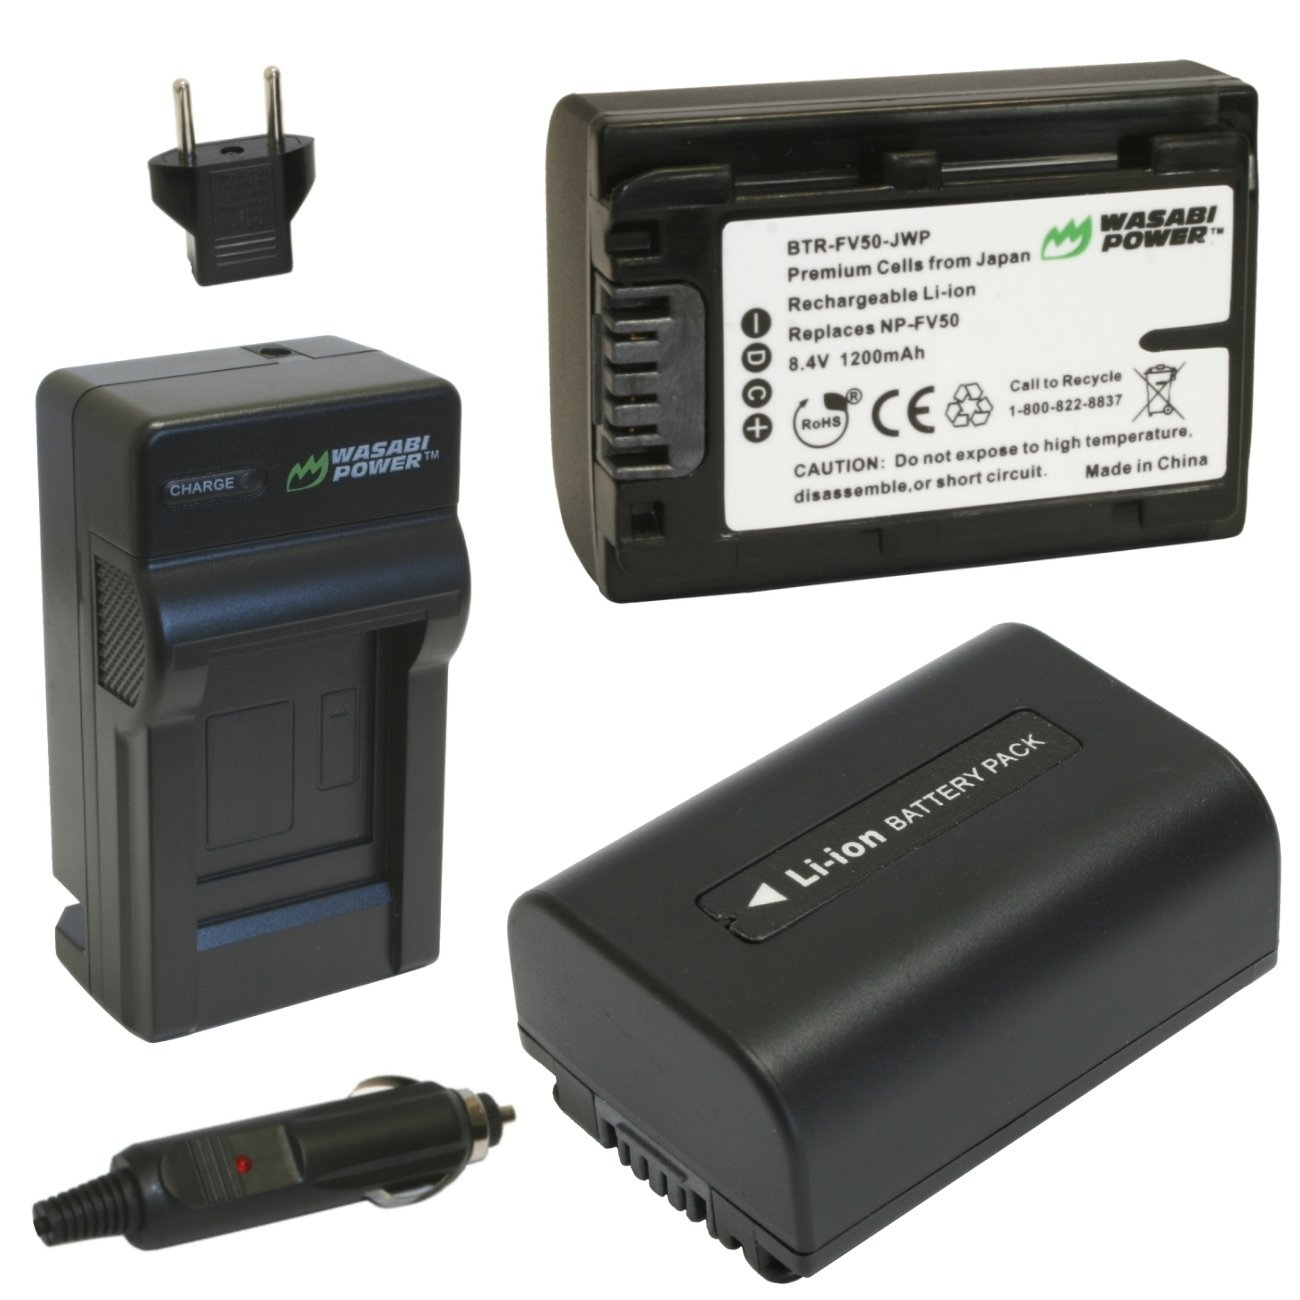 Wasabi Power Battery (2-Pack) and Charger for Sony NP-FV30, NP-FV40, NP-FV50 and Sony DCR-SR15, SR21, SR68, SR88, SX15, SX21, SX44, SX45, SX63, SX65, SX83, SX85, FDR-AX100, HDR-CX105, CX110, CX115, CX130, CX150, CX155, CX160, CX190, CX200, CX210, CX220, C